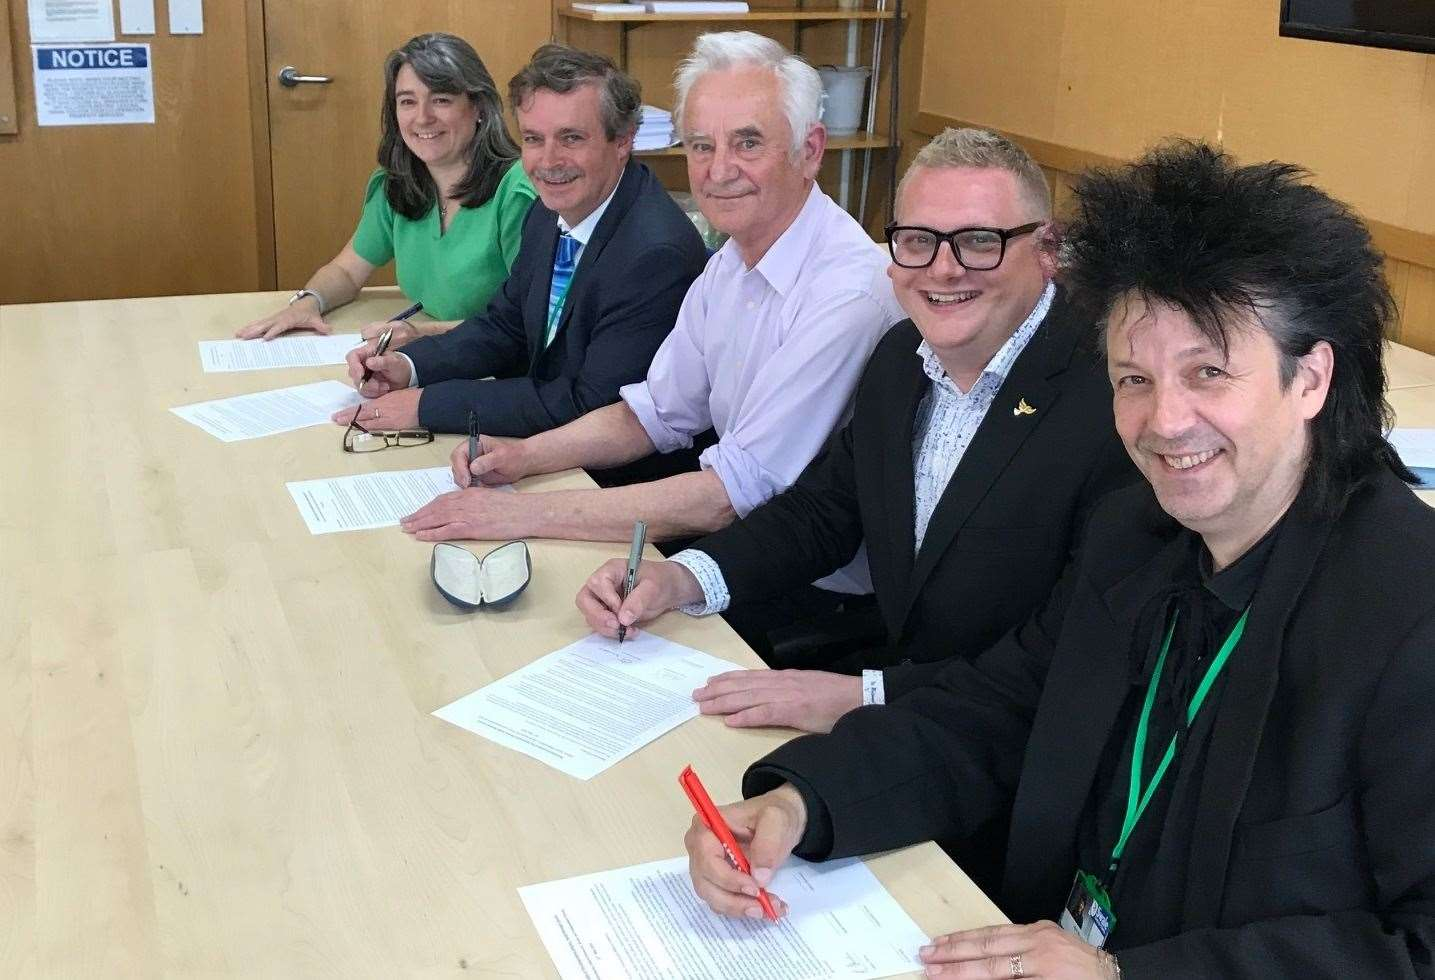 Members of Swale council's new coalition administration